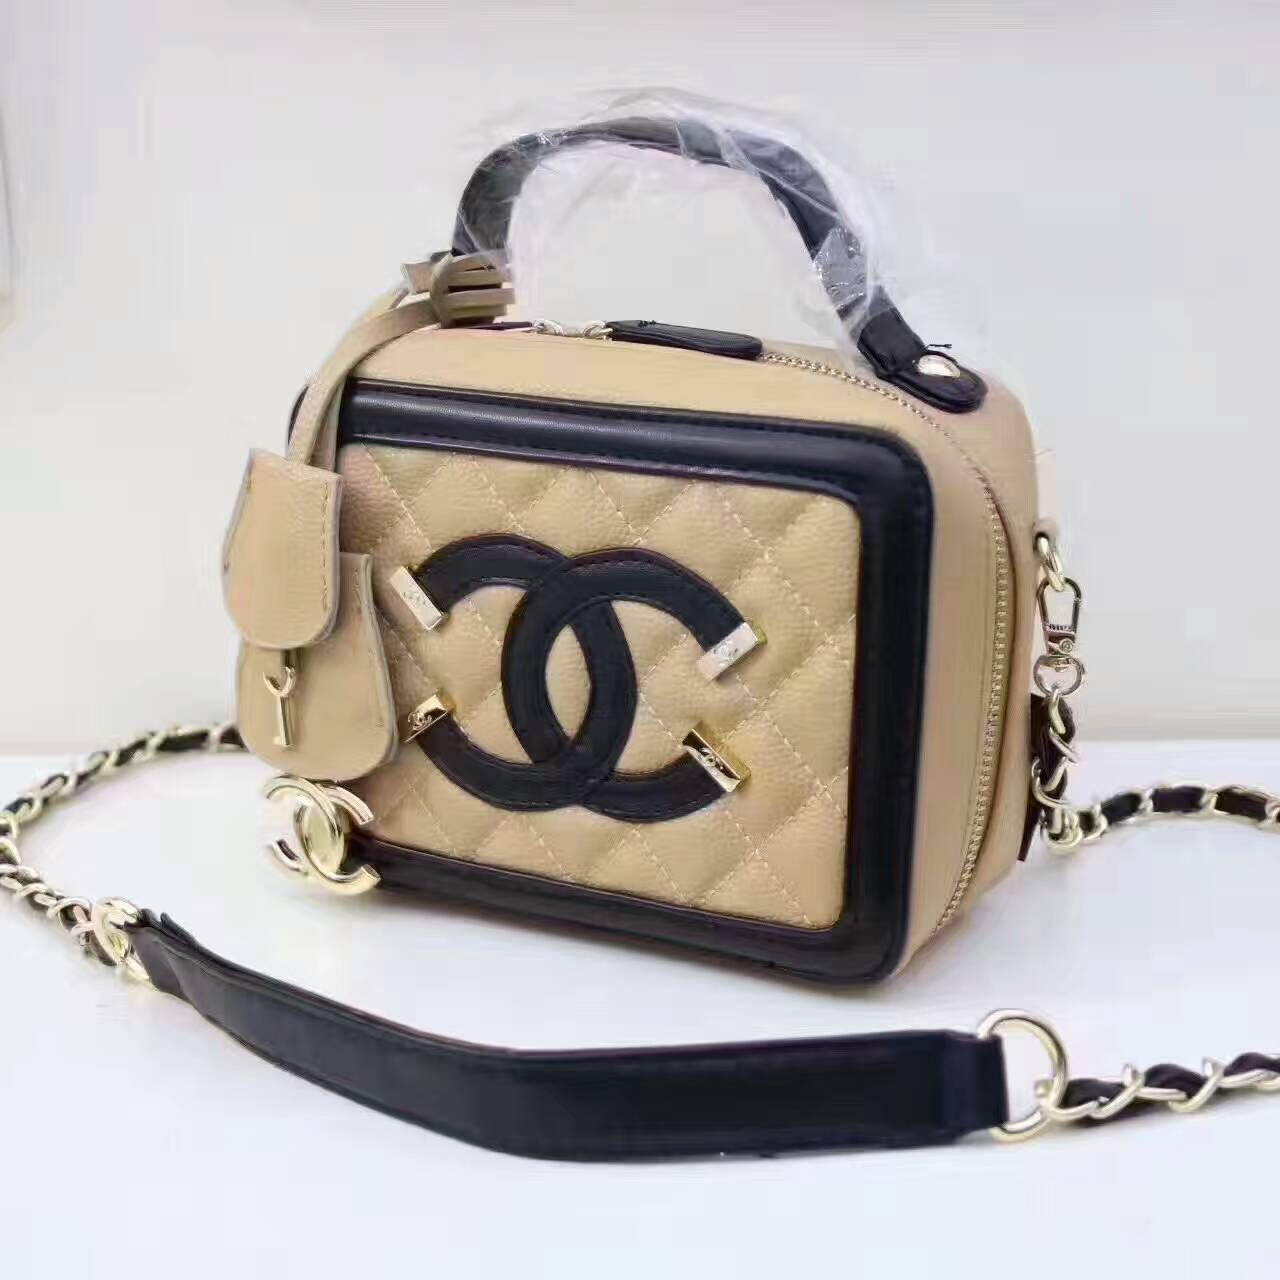 184d017b7040 Chanel Women Shopping Leather Metal Chain Crossbody Satchel Shoulder Bag  522 from Summer11. Saved to